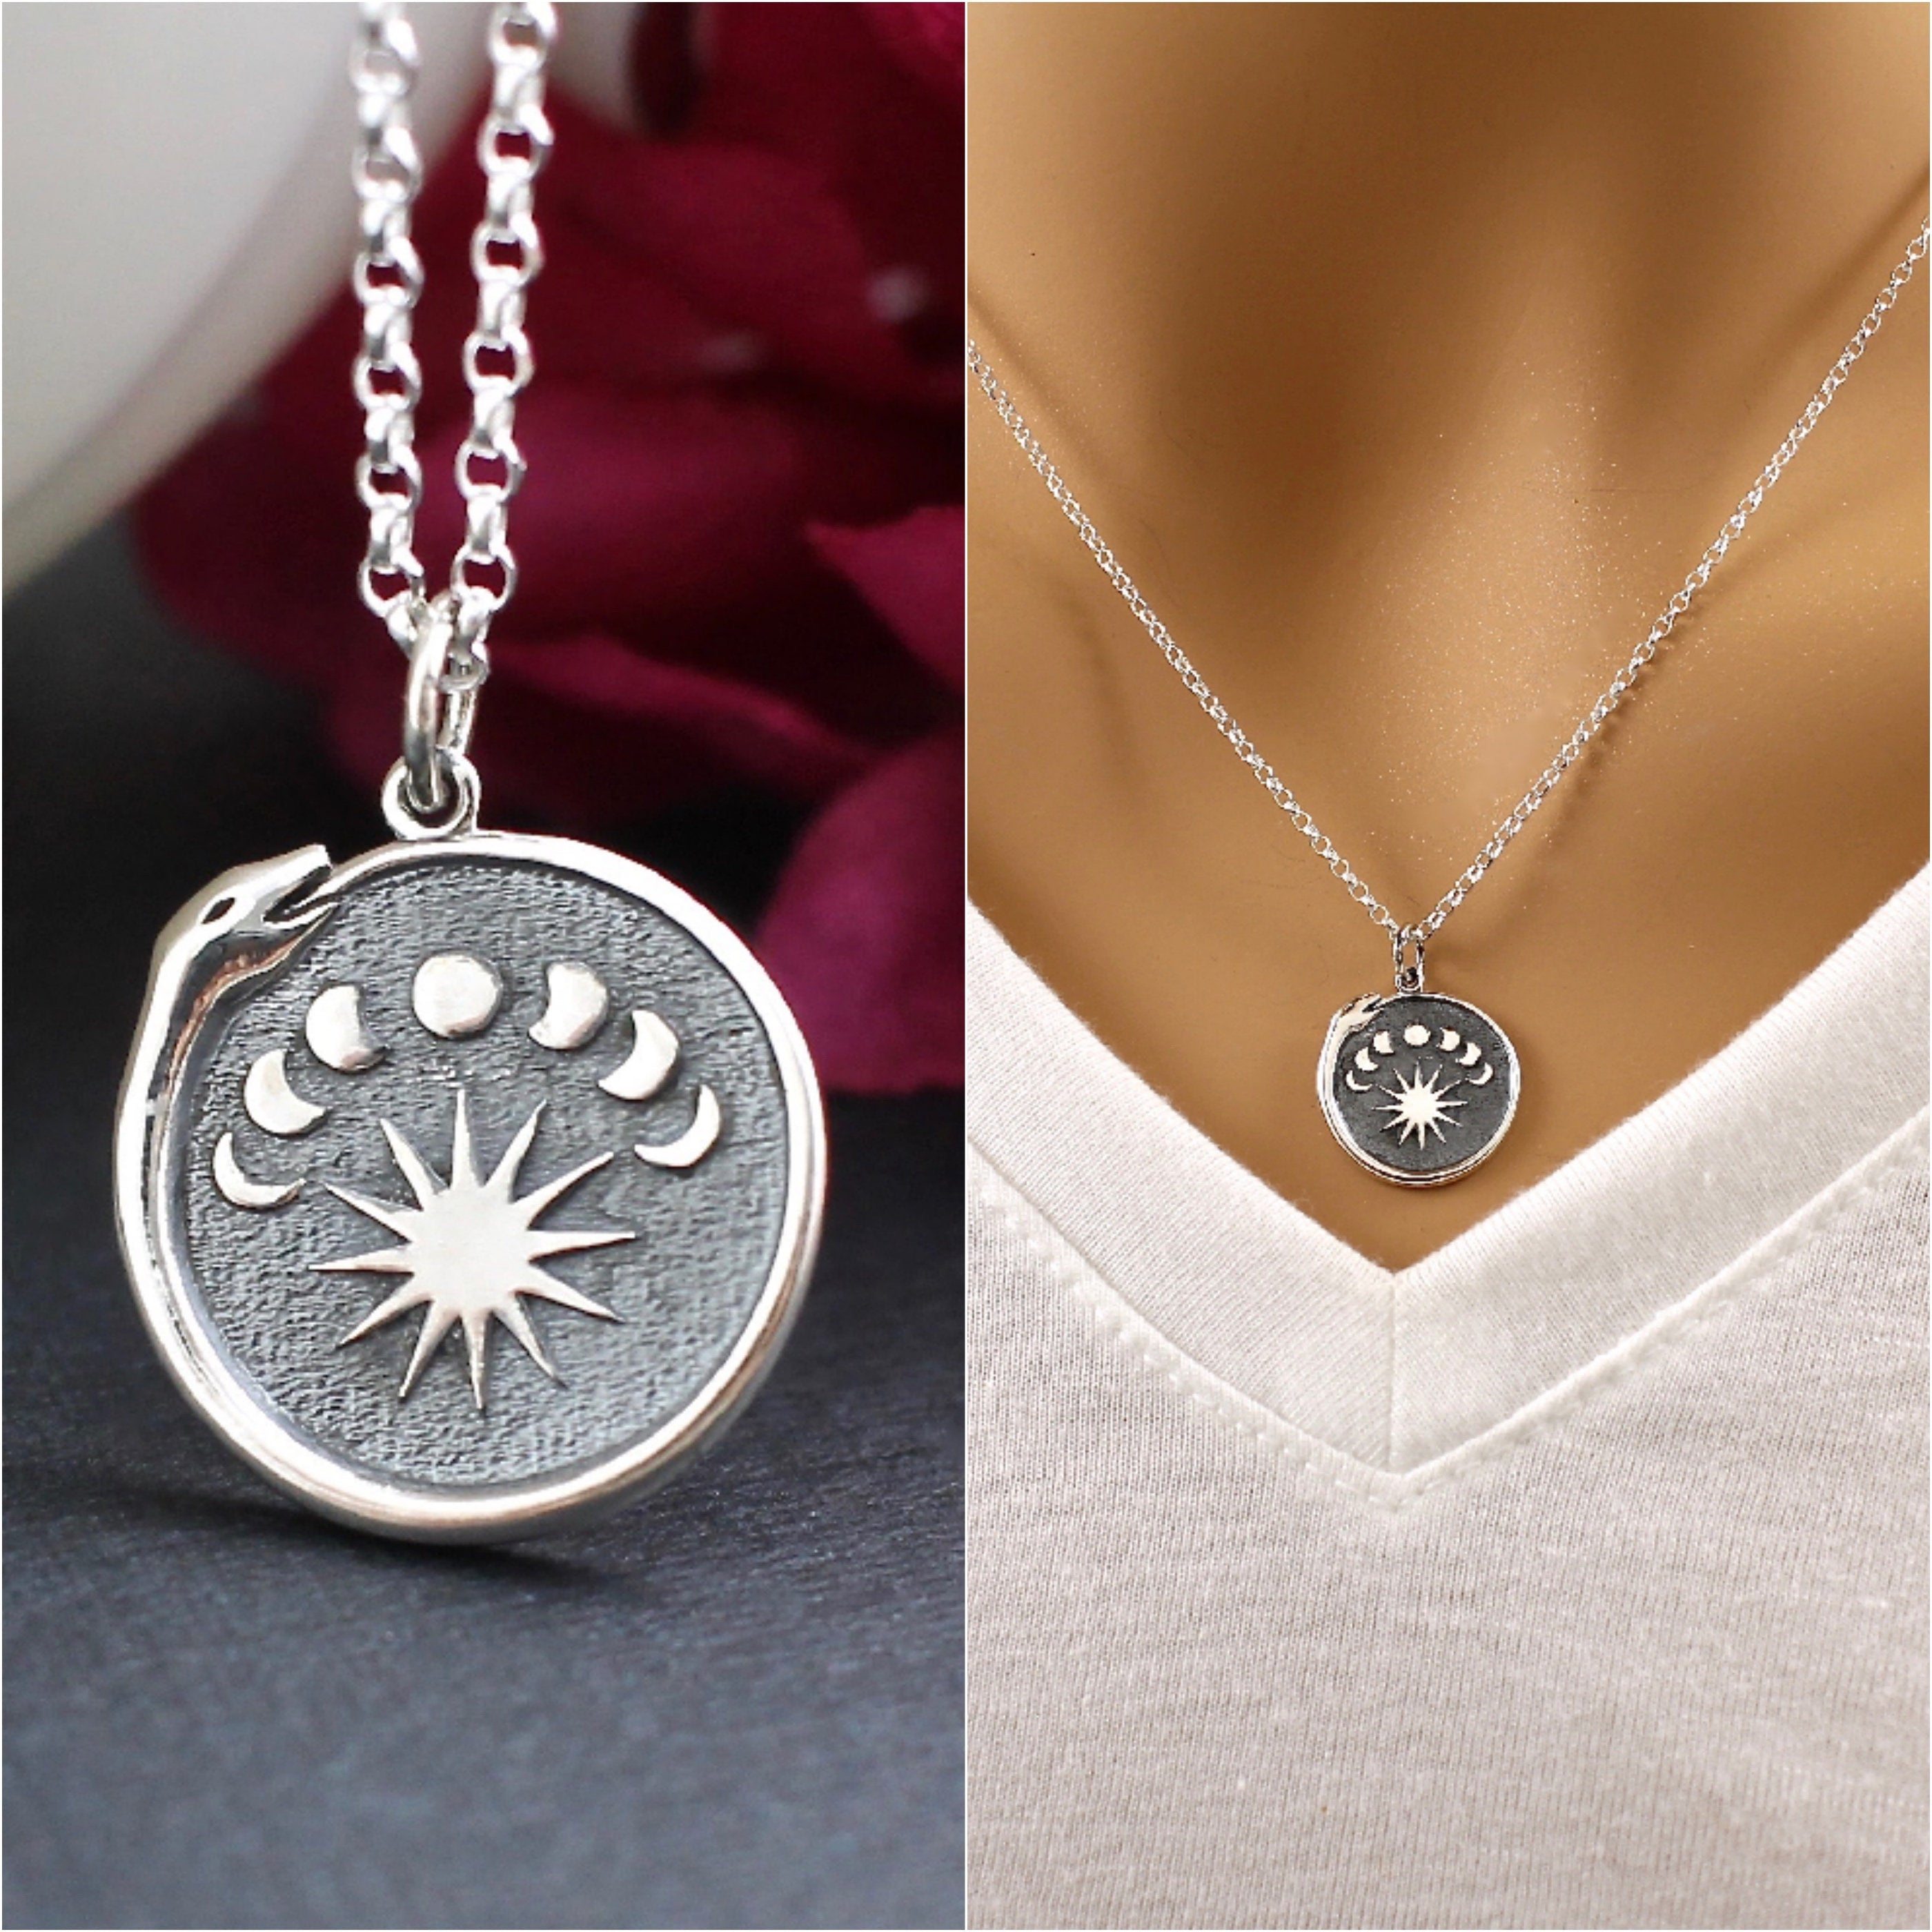 Moon Phase Necklace, Snake Necklace, Talisman Necklace, Snake Eating Tail, Jewelry, Ouroboros Snake